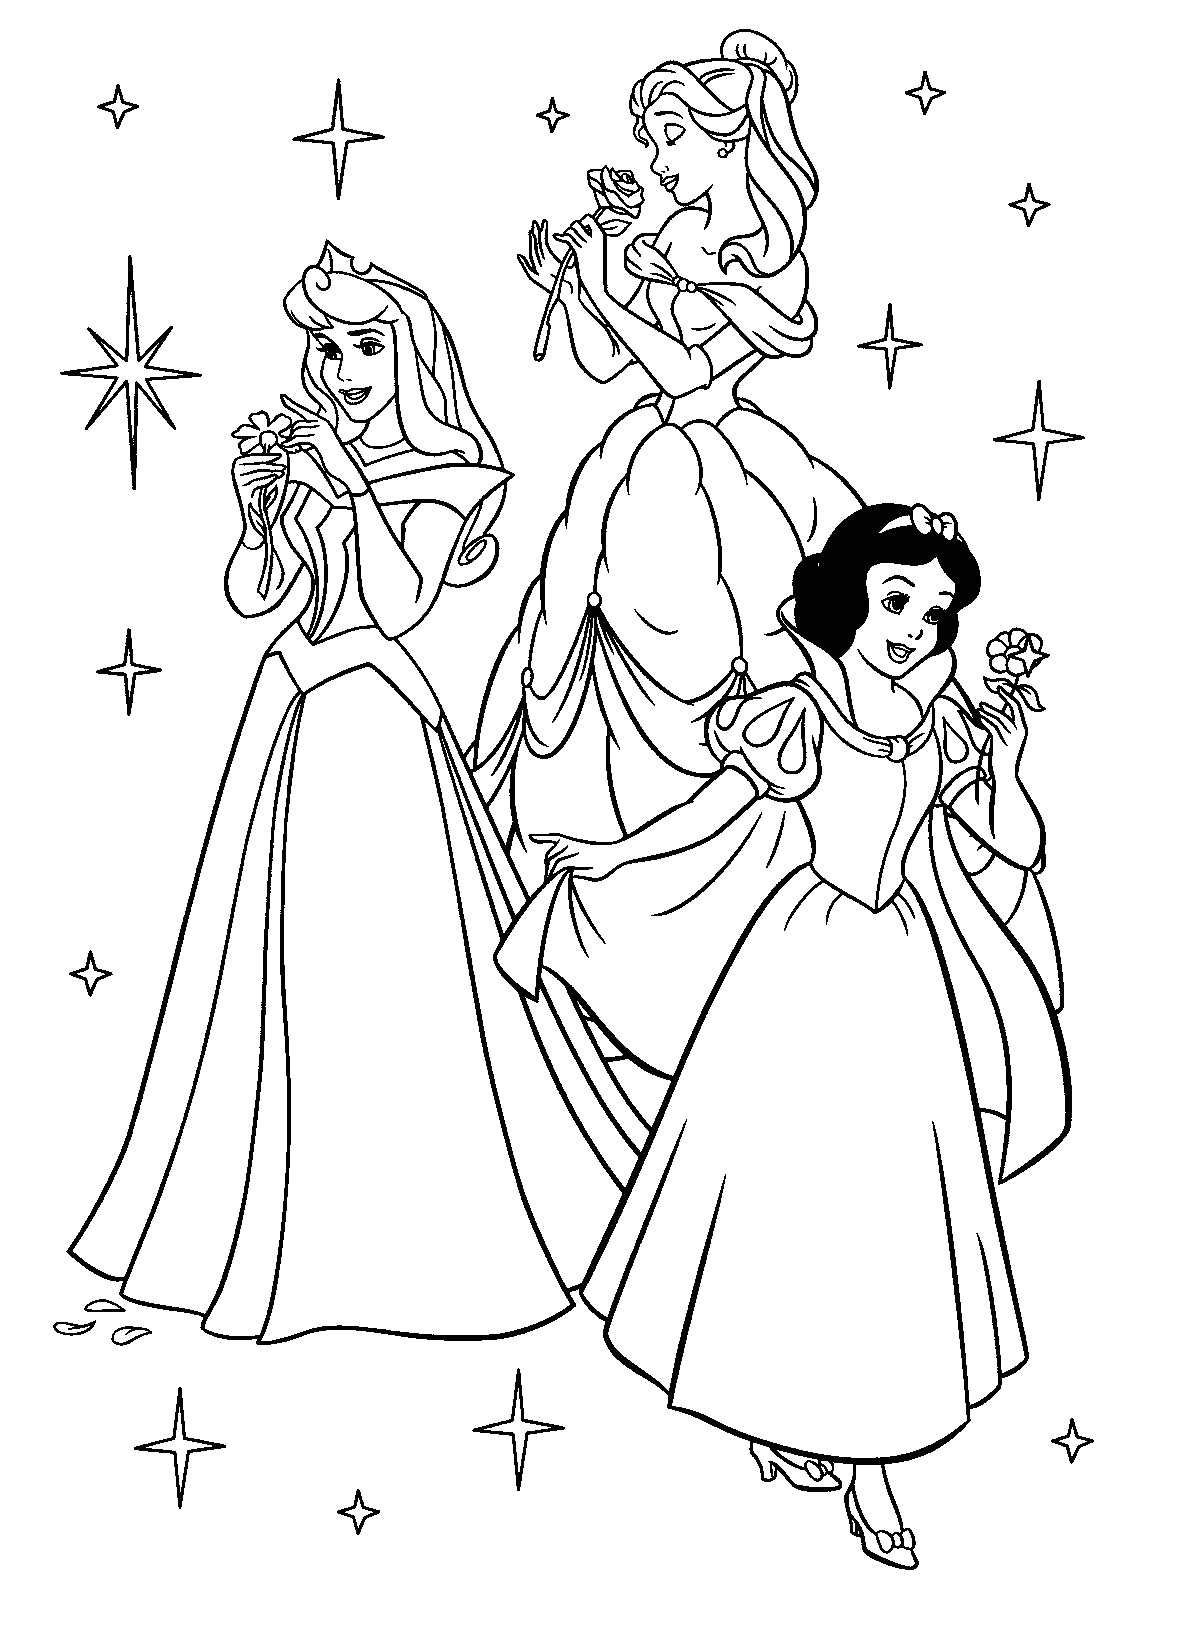 Disney Princesses Coloring Pages to Print for Free Princess Coloring Pages Best Coloring Pages for Kids